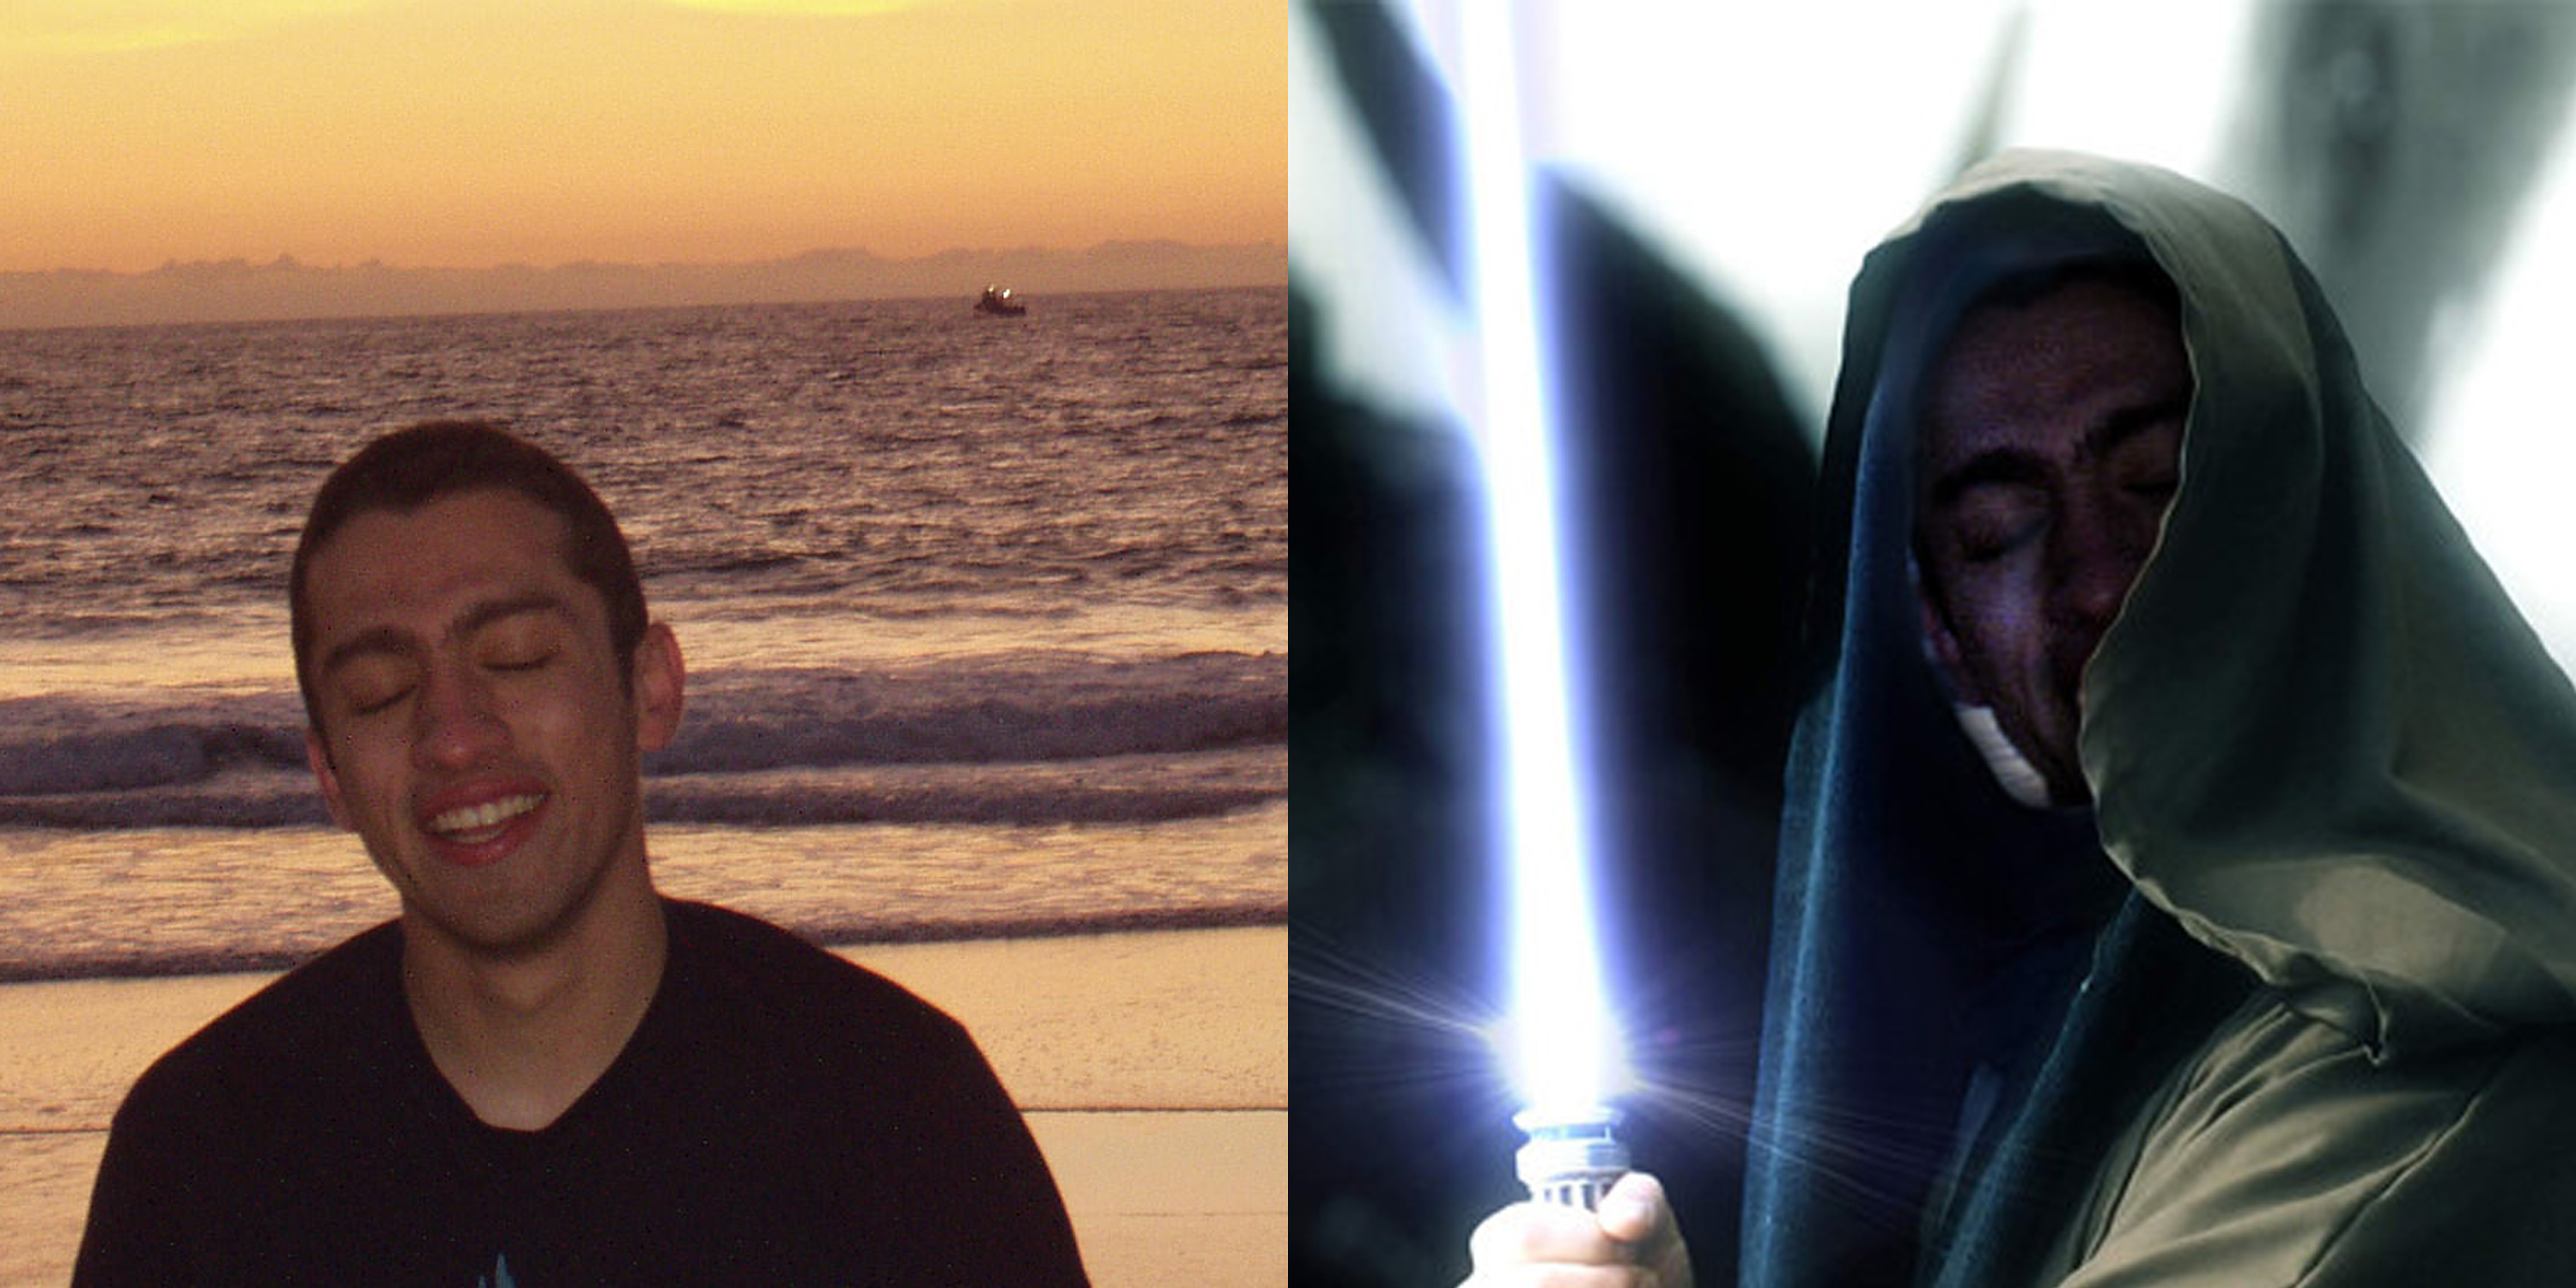 turn your portrait into an awesome Jedi